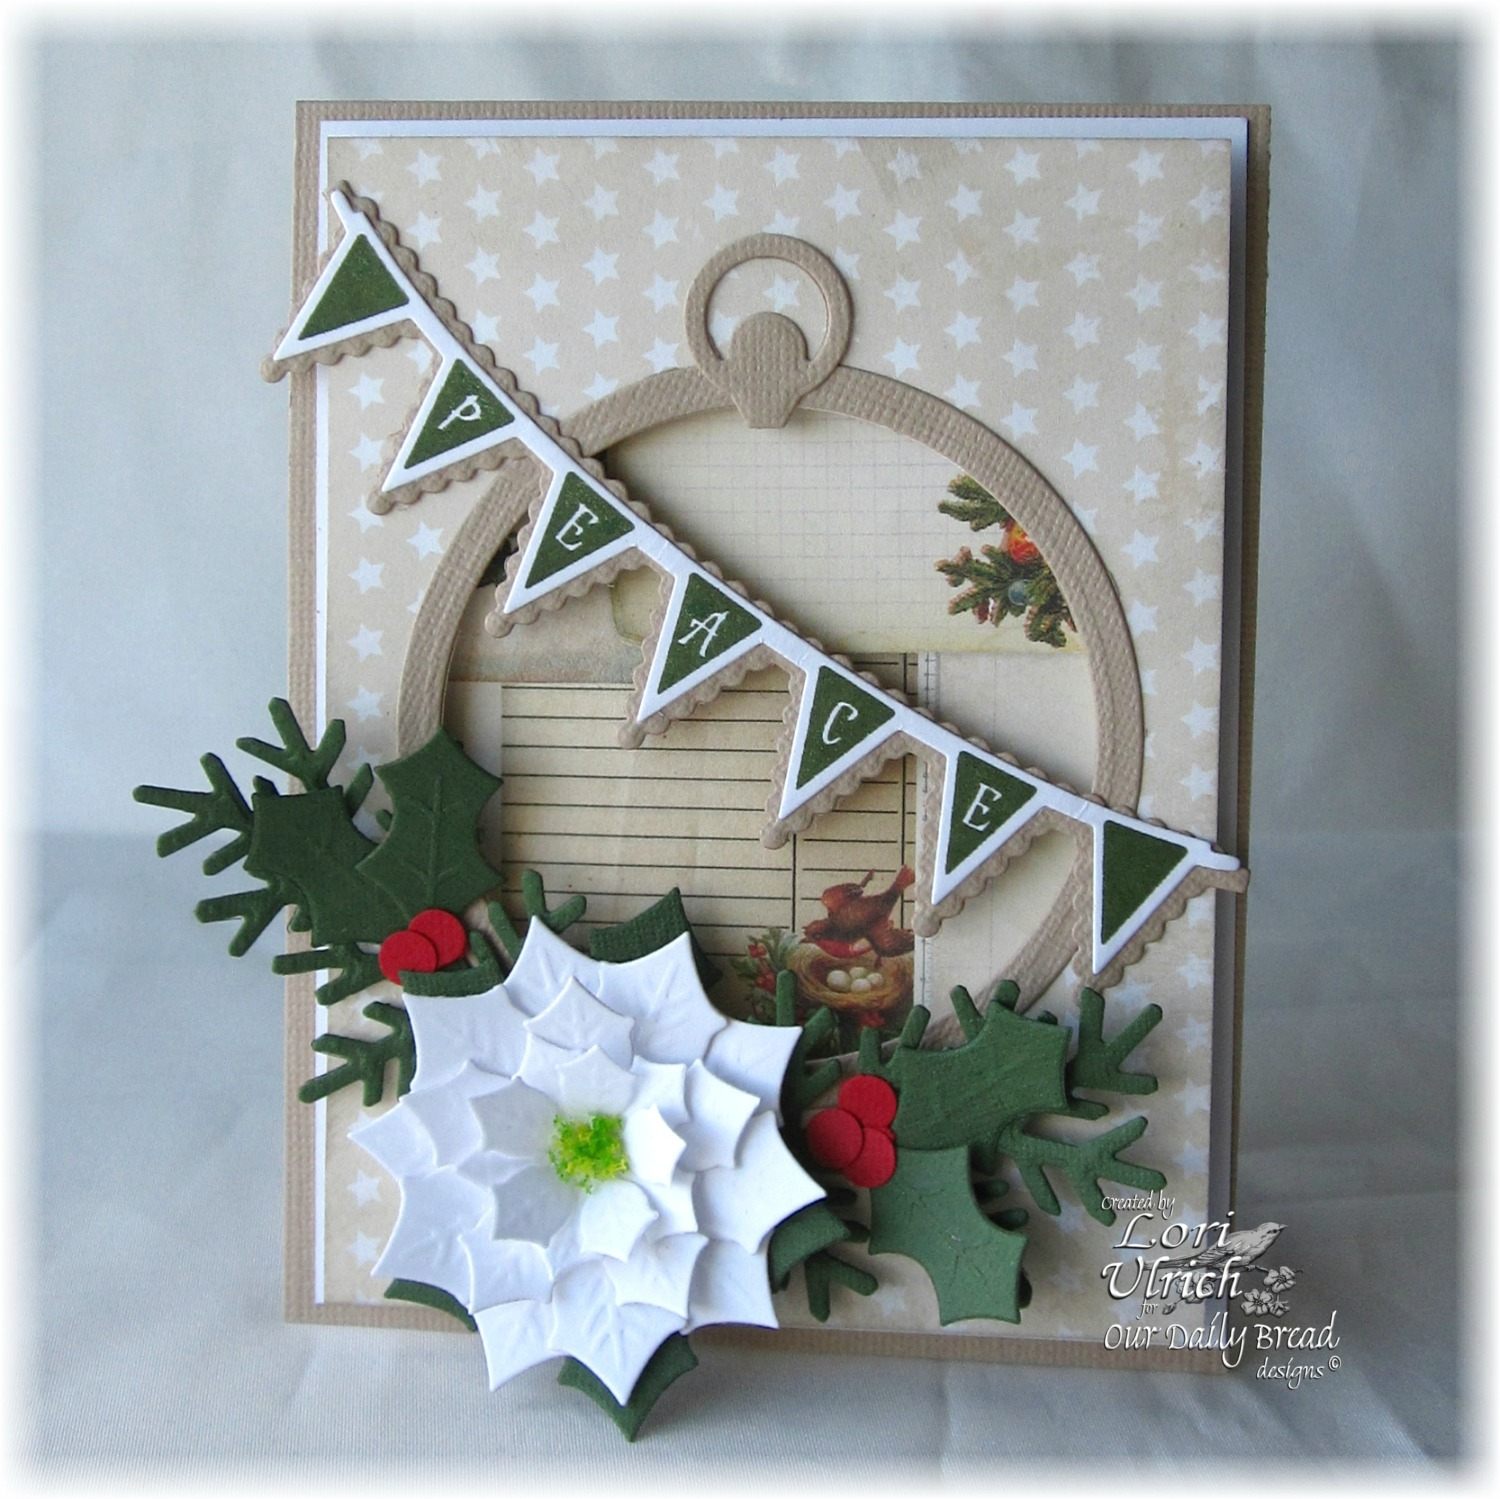 Stamps - Christmas Pennant Row, Our Daily Bread Designs Matting Circles Die, ODBD Custom Circle Ornaments Die, ODBD Custom Peaceful Poinsettias Die, ODBD Custom Fancy Foliage Die, ODBD Custom Pennant Row Die